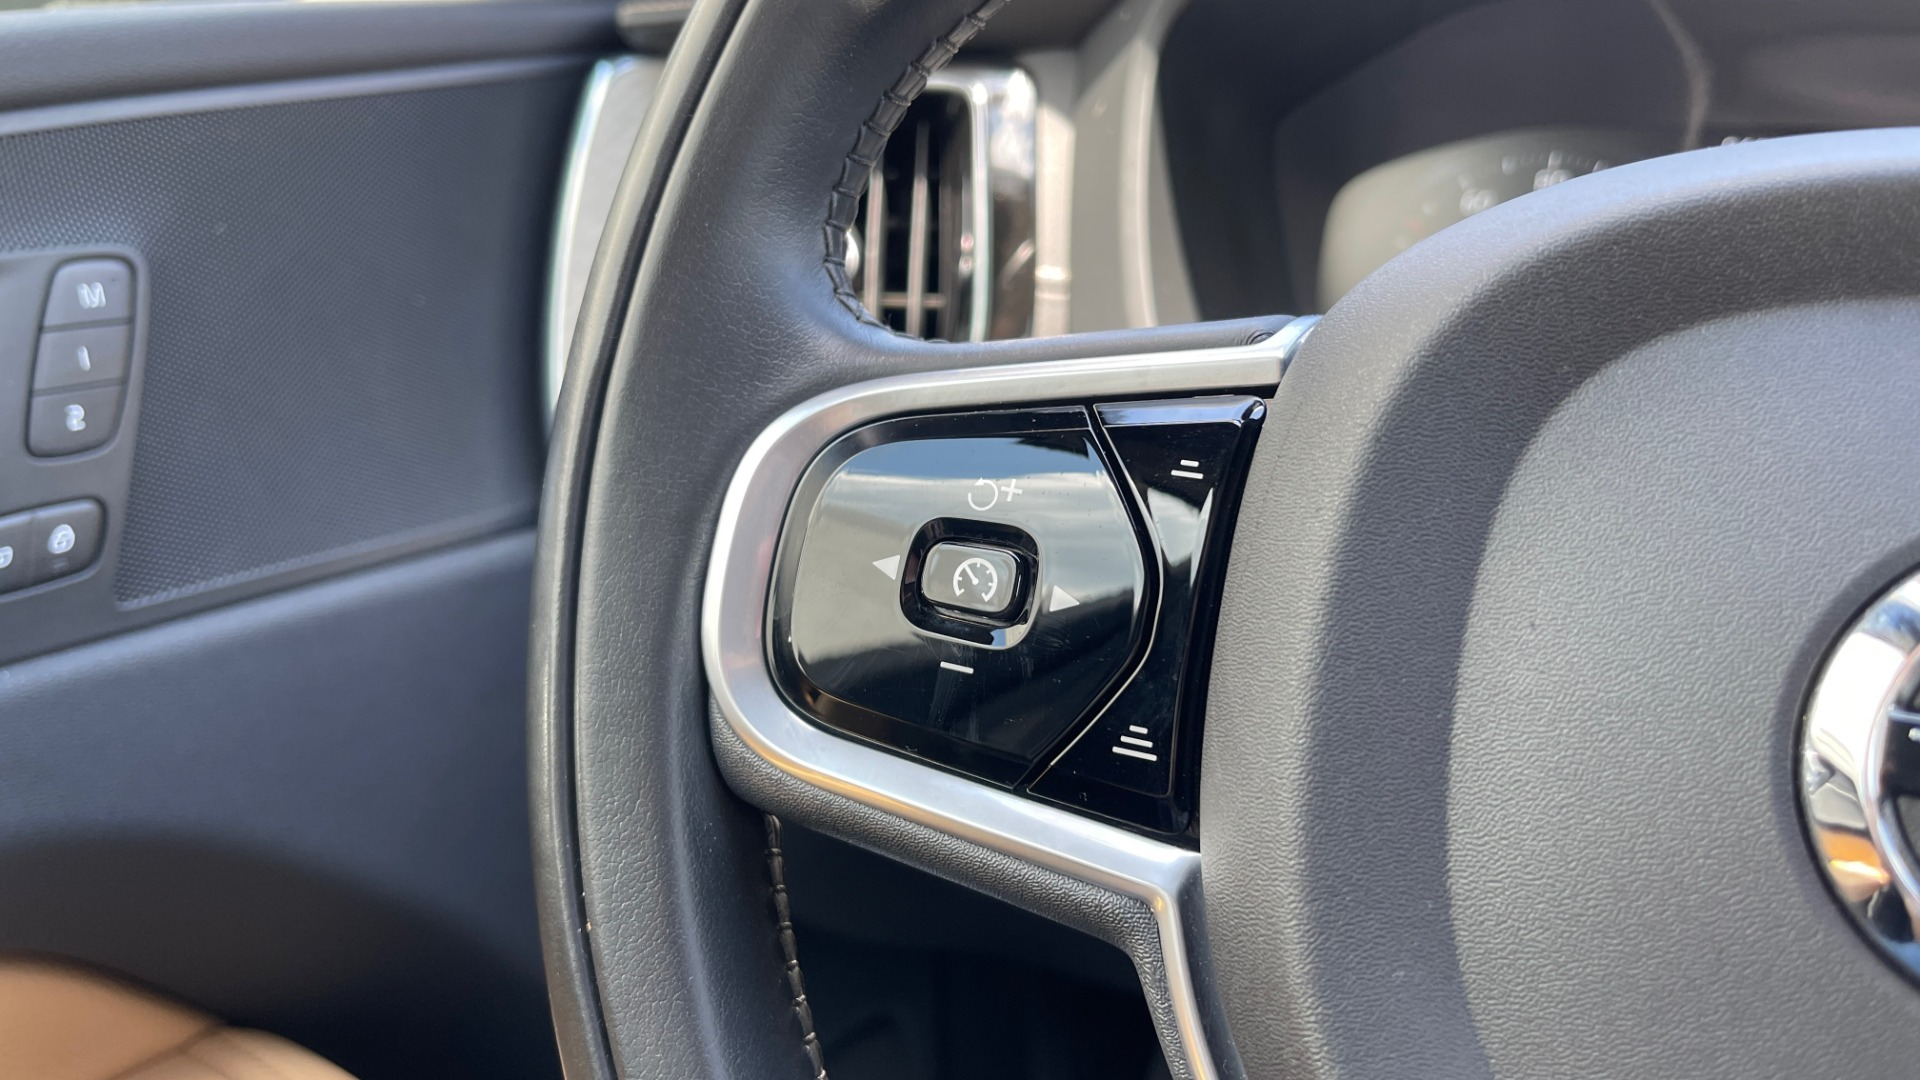 Used 2018 Volvo XC60 INSCRIPTION 2.0L TURBO SUV / AWD / NAV / SUNROOF / REARVIEW for sale $38,795 at Formula Imports in Charlotte NC 28227 43